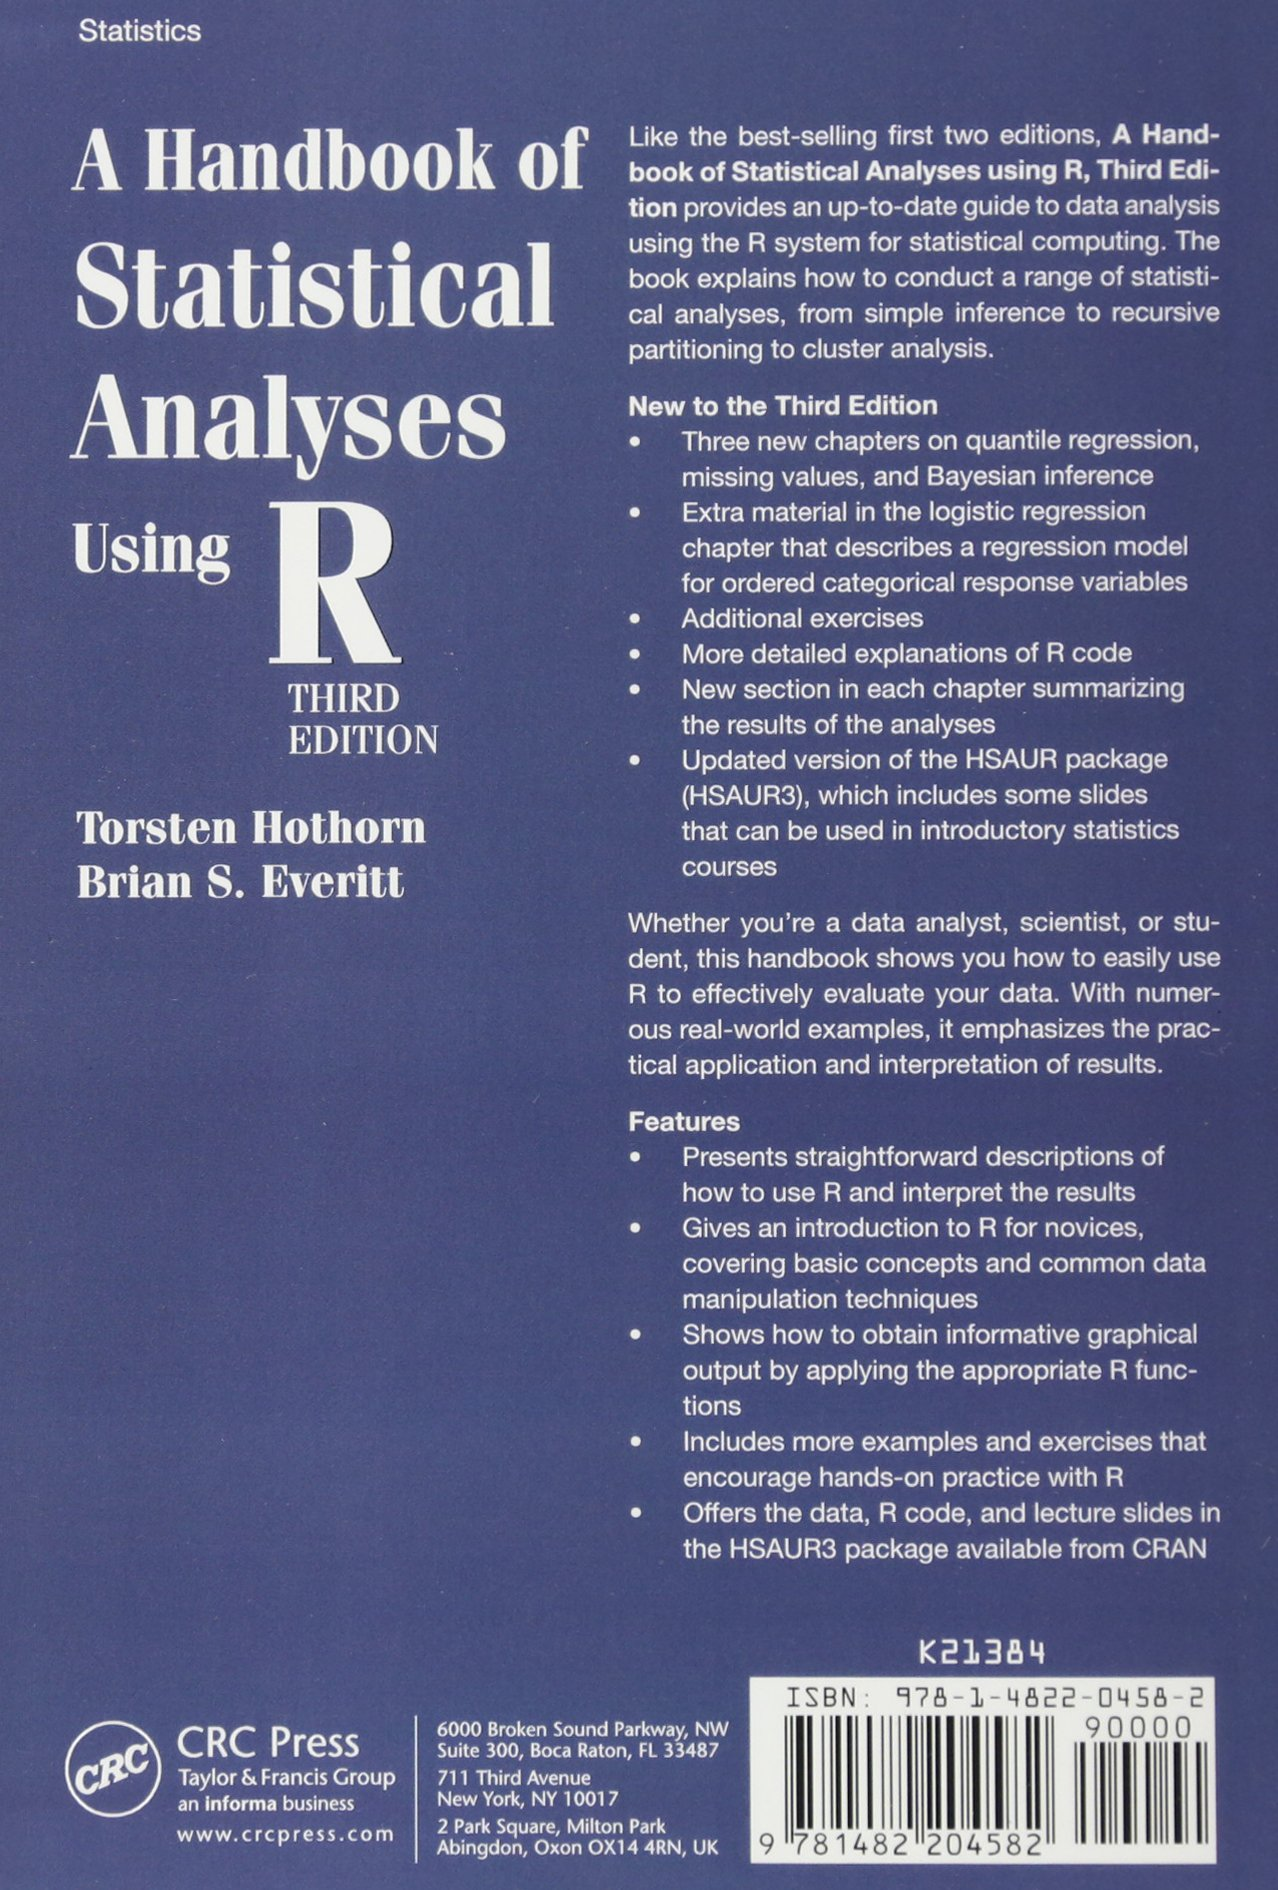 A handbook of statistical analyses using r third edition amazon a handbook of statistical analyses using r third edition amazon torsten hothorn brian s everitt 9781482204582 books fandeluxe Image collections